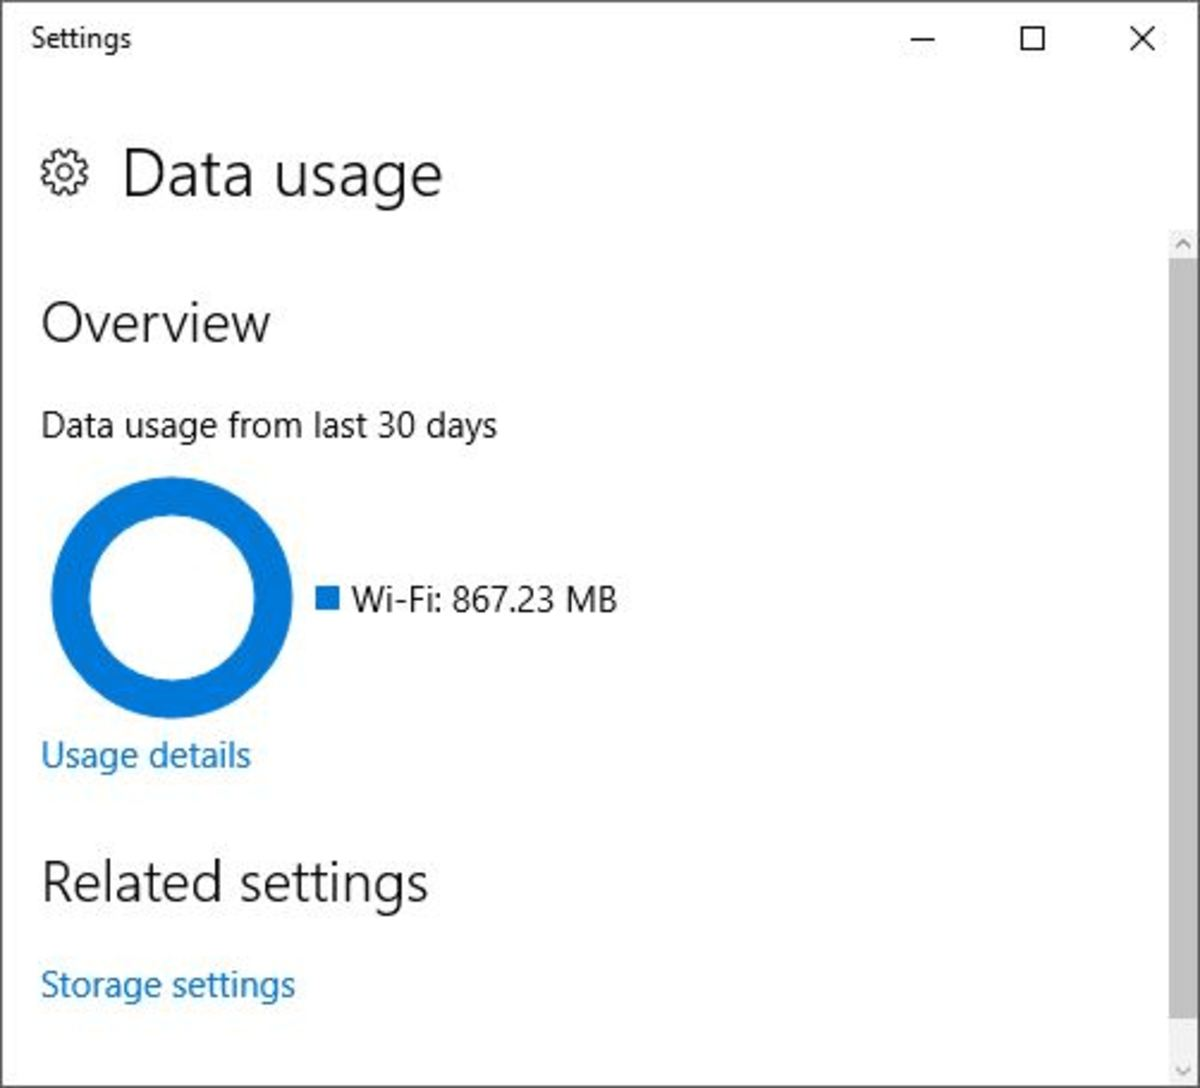 Windows 10 keeps track of how much data has been used in the past 30 days, or since you last connected to a your wireless router, or connected via Ethernet.